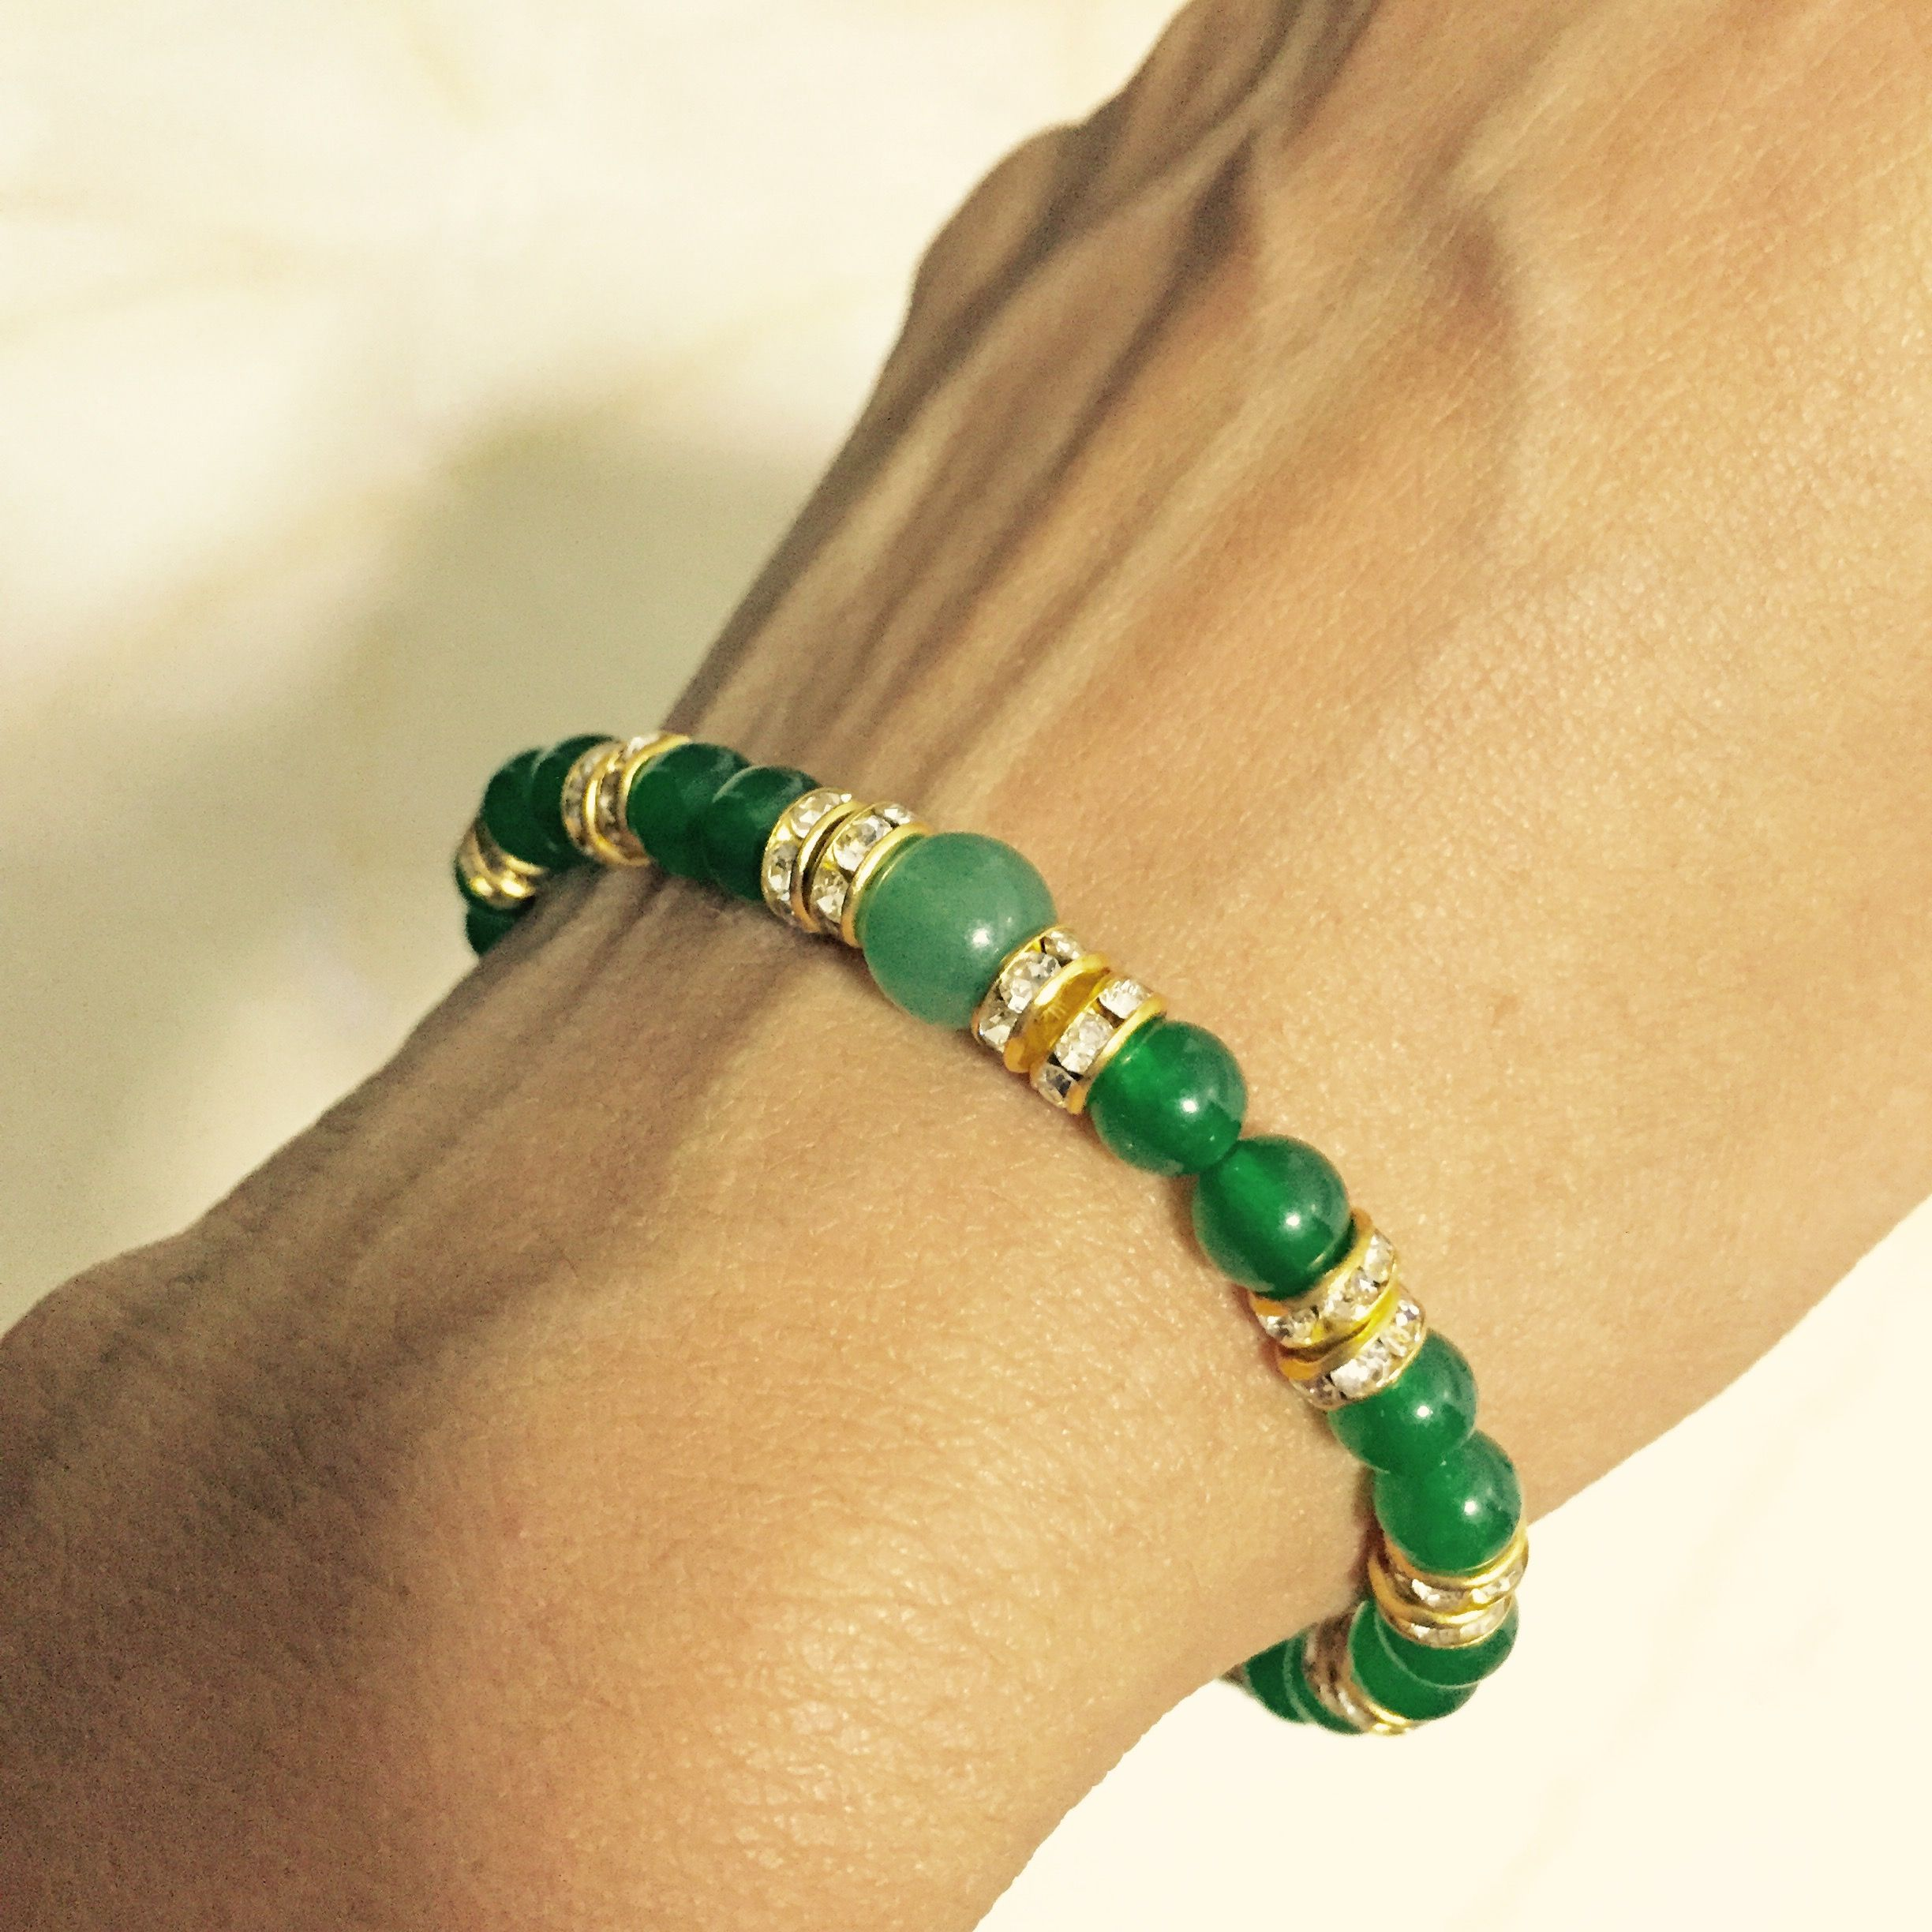 bracelet hands shop mayan guatemala real necklace jewelry from jade